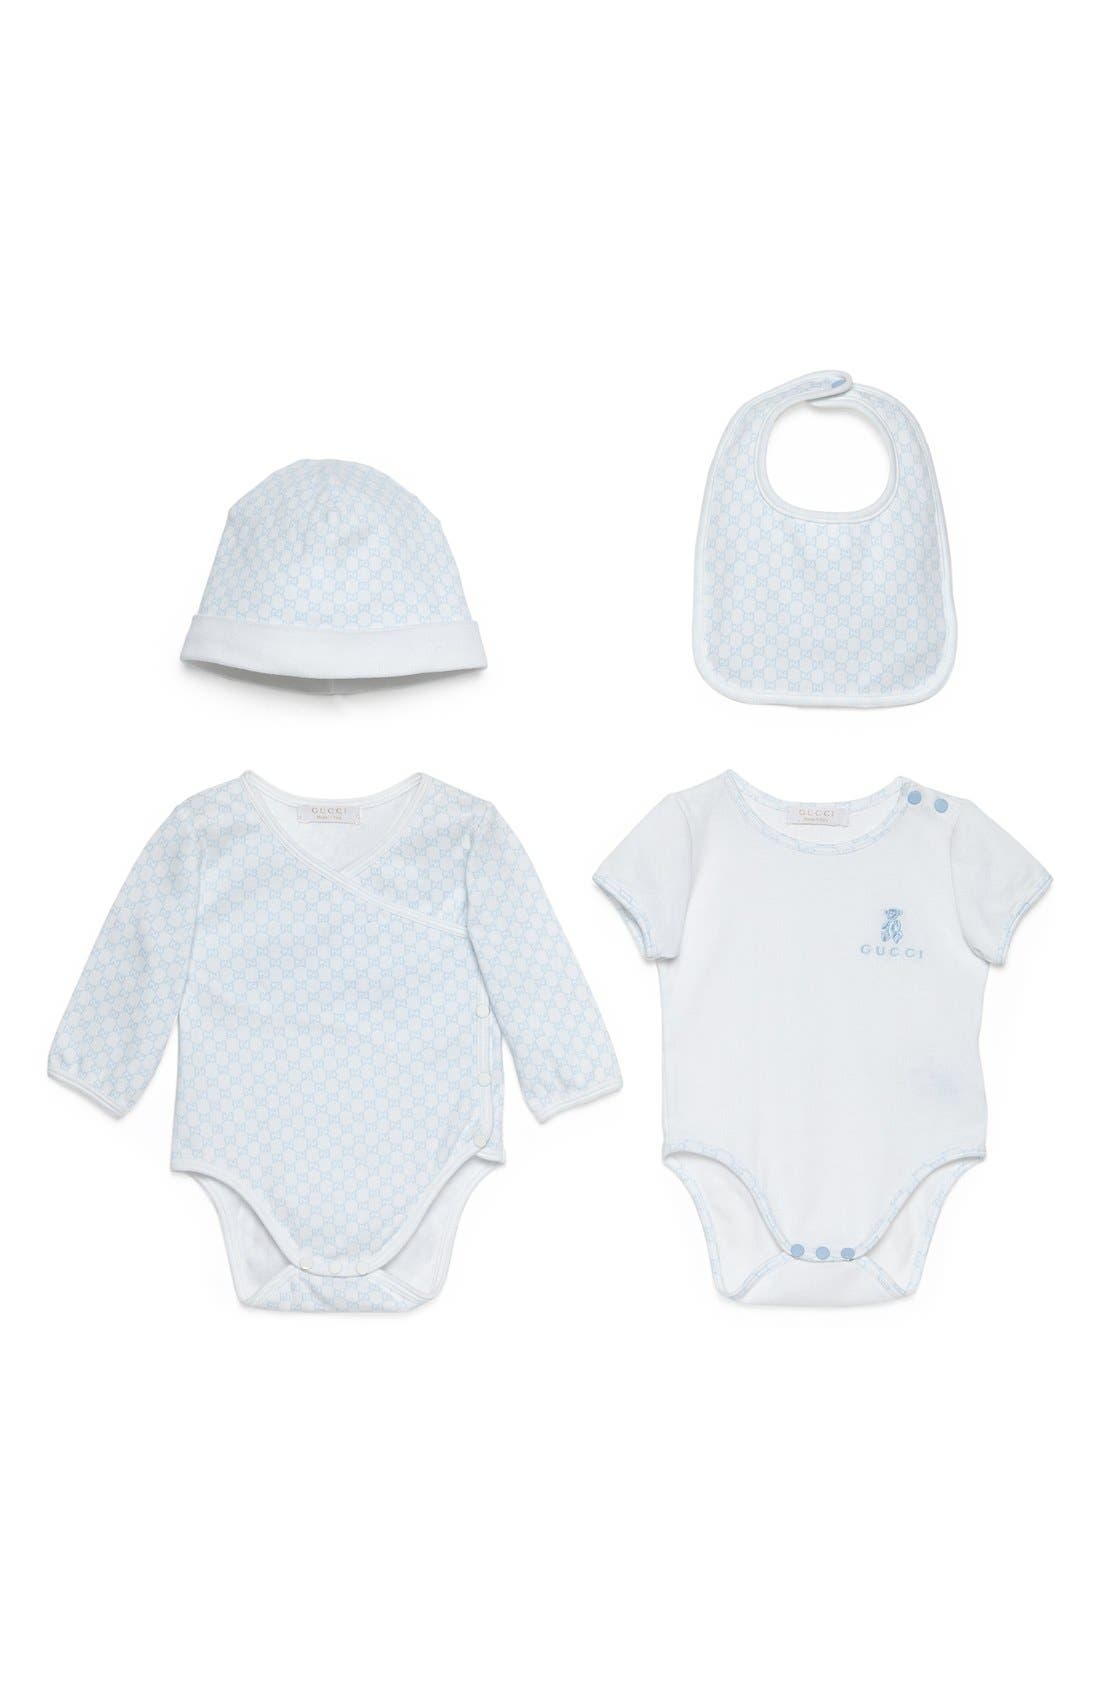 Gucci Short Sleeve Bodysuit, Long Sleeve Bodysuit, Hat & Bib Set (Baby)